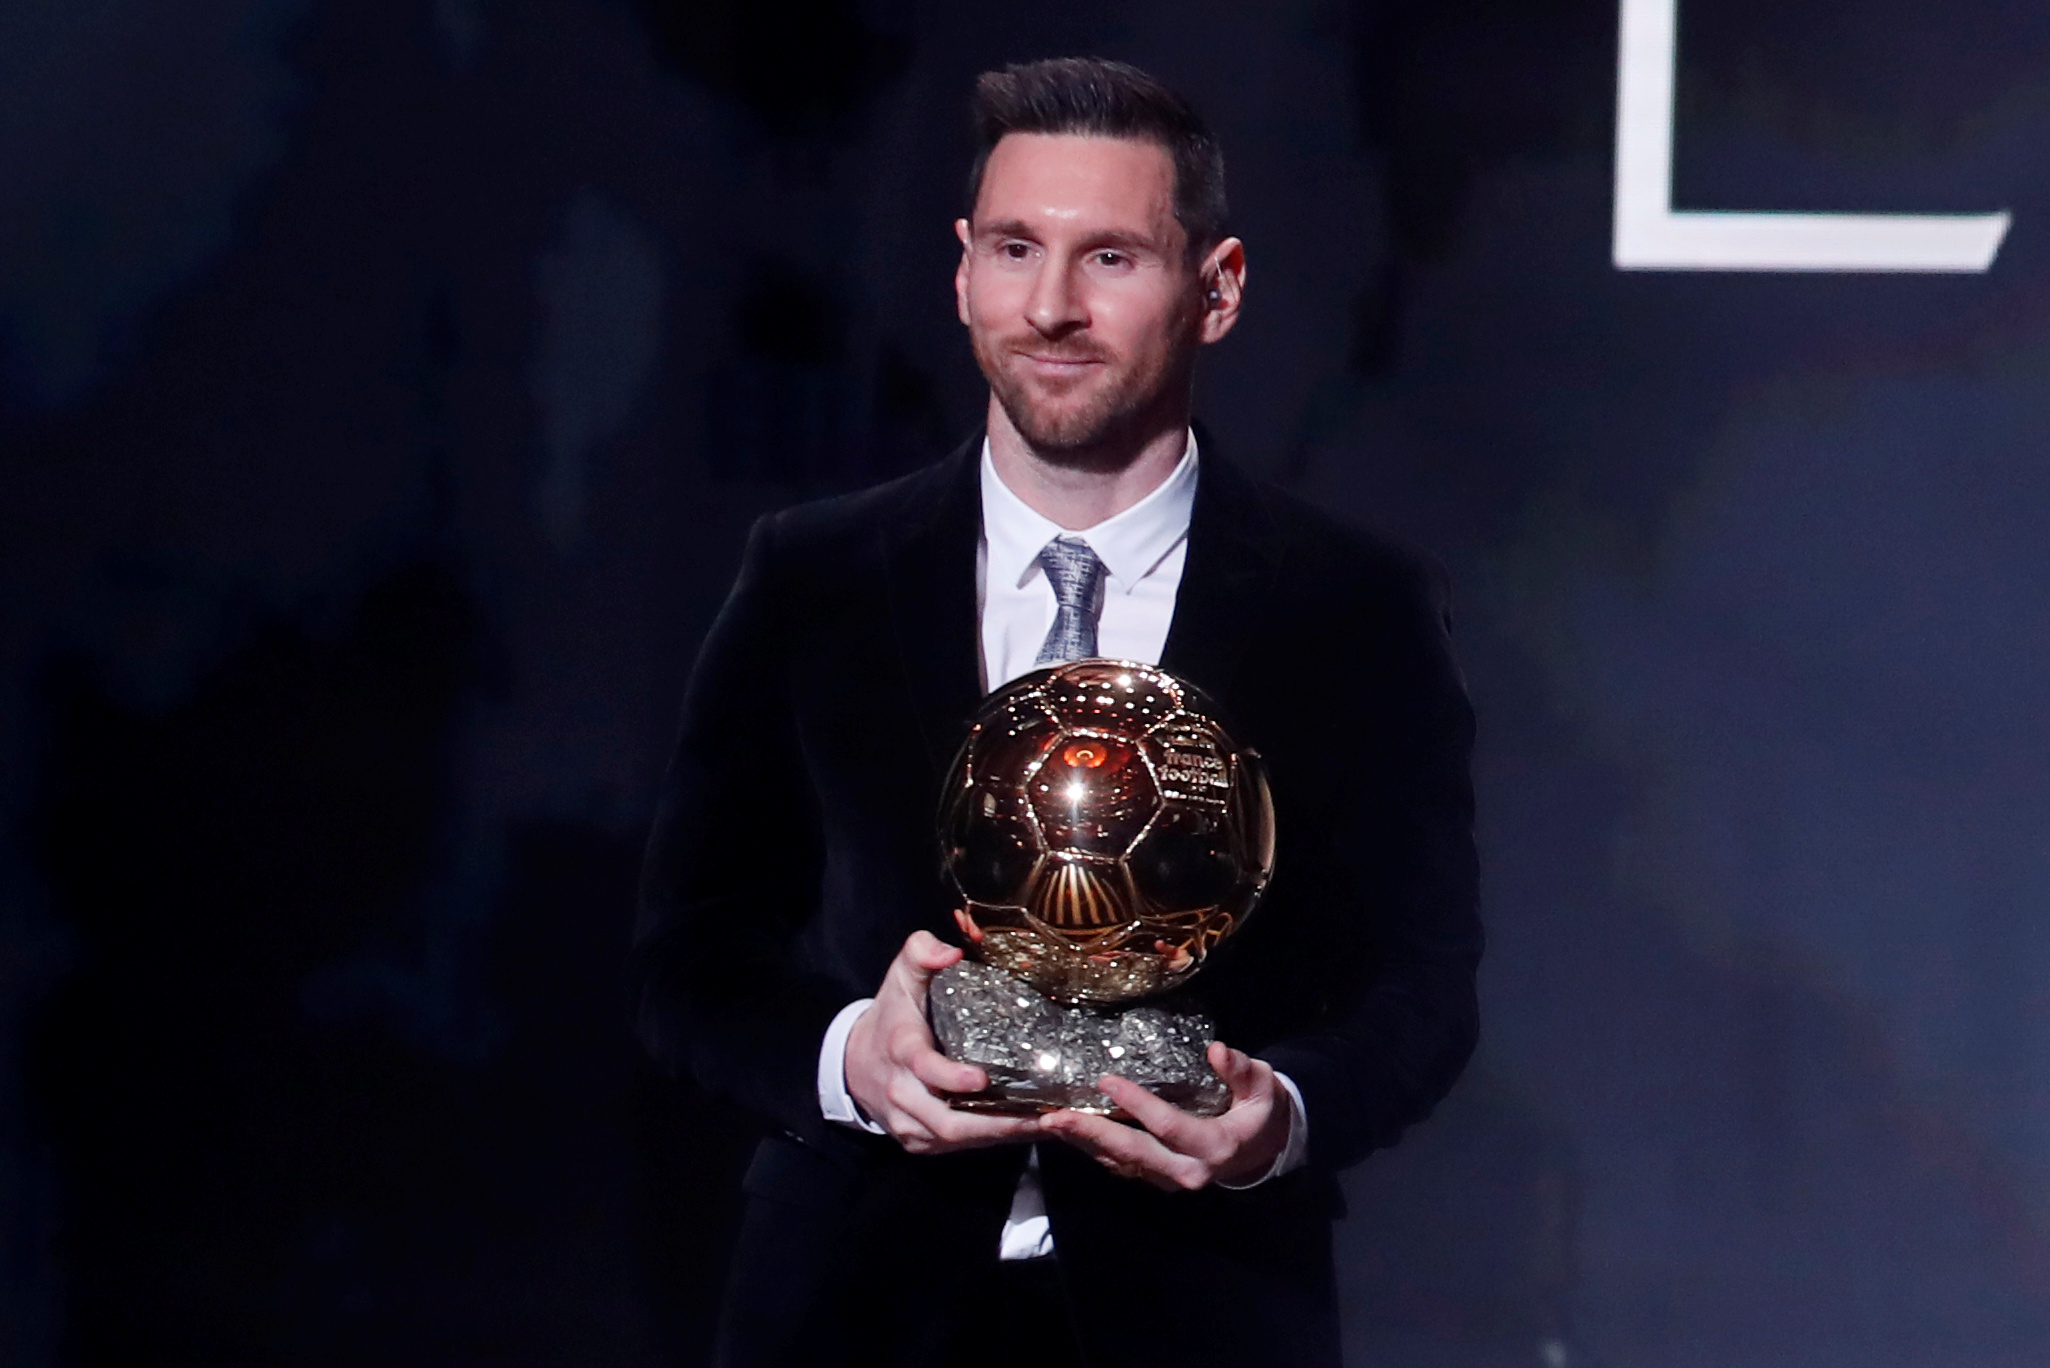 Soccer Football - The Ballon dOr awards - Theatre du Chatelet, Paris, France - December 2, 2019  Barcelona's Lionel Messi with the Ballon d'Or award  REUTERS/Christian Hartmann - RC28ND9DEAU6